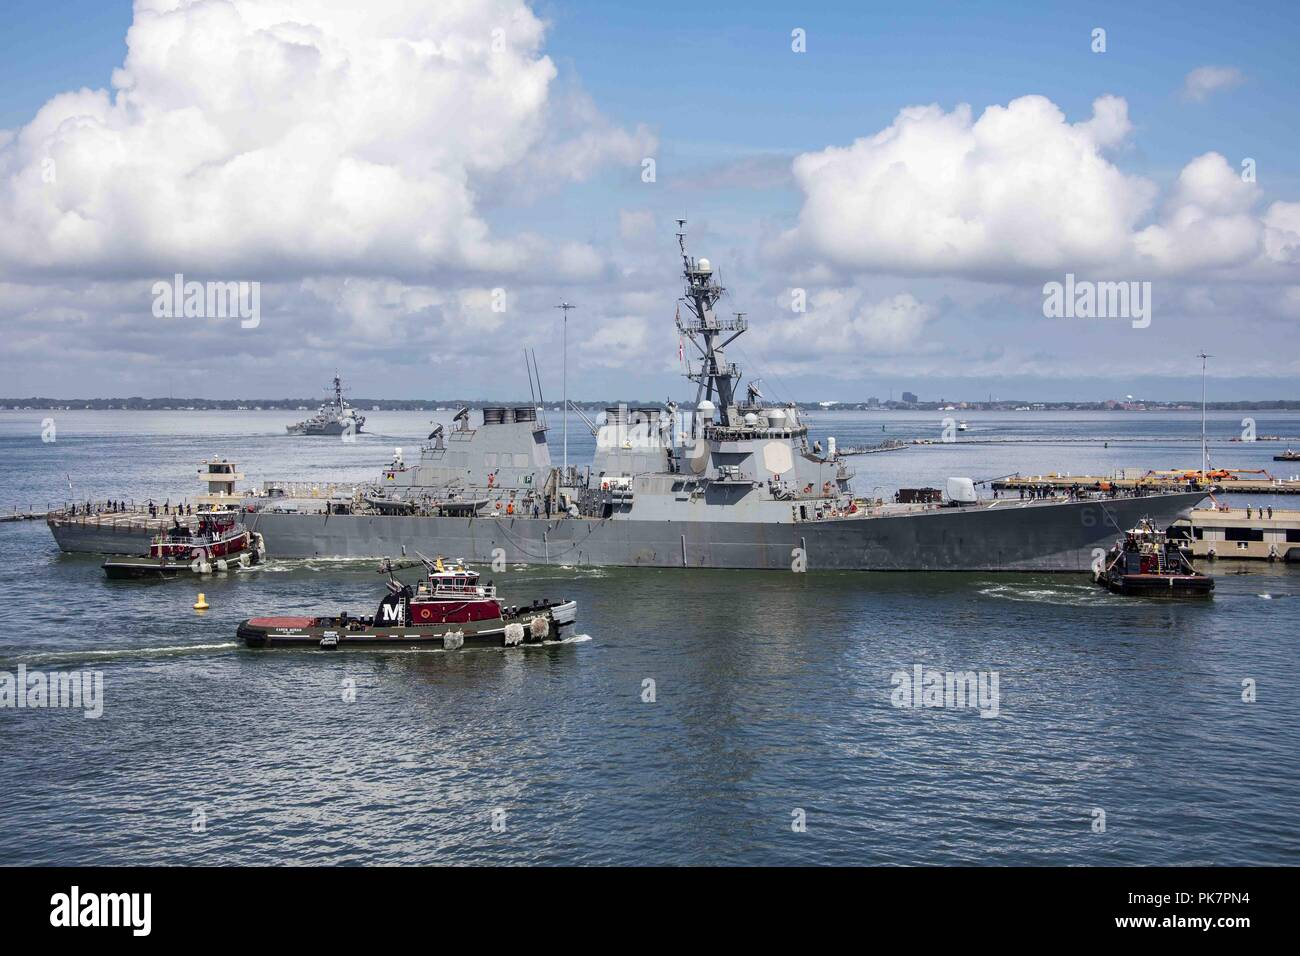 Norfolk, Va, USA. 10th Sep, 2018. NORFOLK (Sept. 10, 2018) The Arleigh Burke-class guided-missile destroyer USS Gonzalez (DDG 66) departs Naval Station Norfolk. U.S. Fleet Forces Command has ordered all U.S. Navy ships in the Hampton Roads area to set Sortie Condition Alpha in preparation for Hurricane Florence. (U.S. Navy photo by Mass Communication Specialist 2nd Class Ryre Arciaga/Released)180910-N-KW492-0035 US Navy via globallookpress.com Credit: Us Navy/Russian Look/ZUMA Wire/Alamy Live News - Stock Image